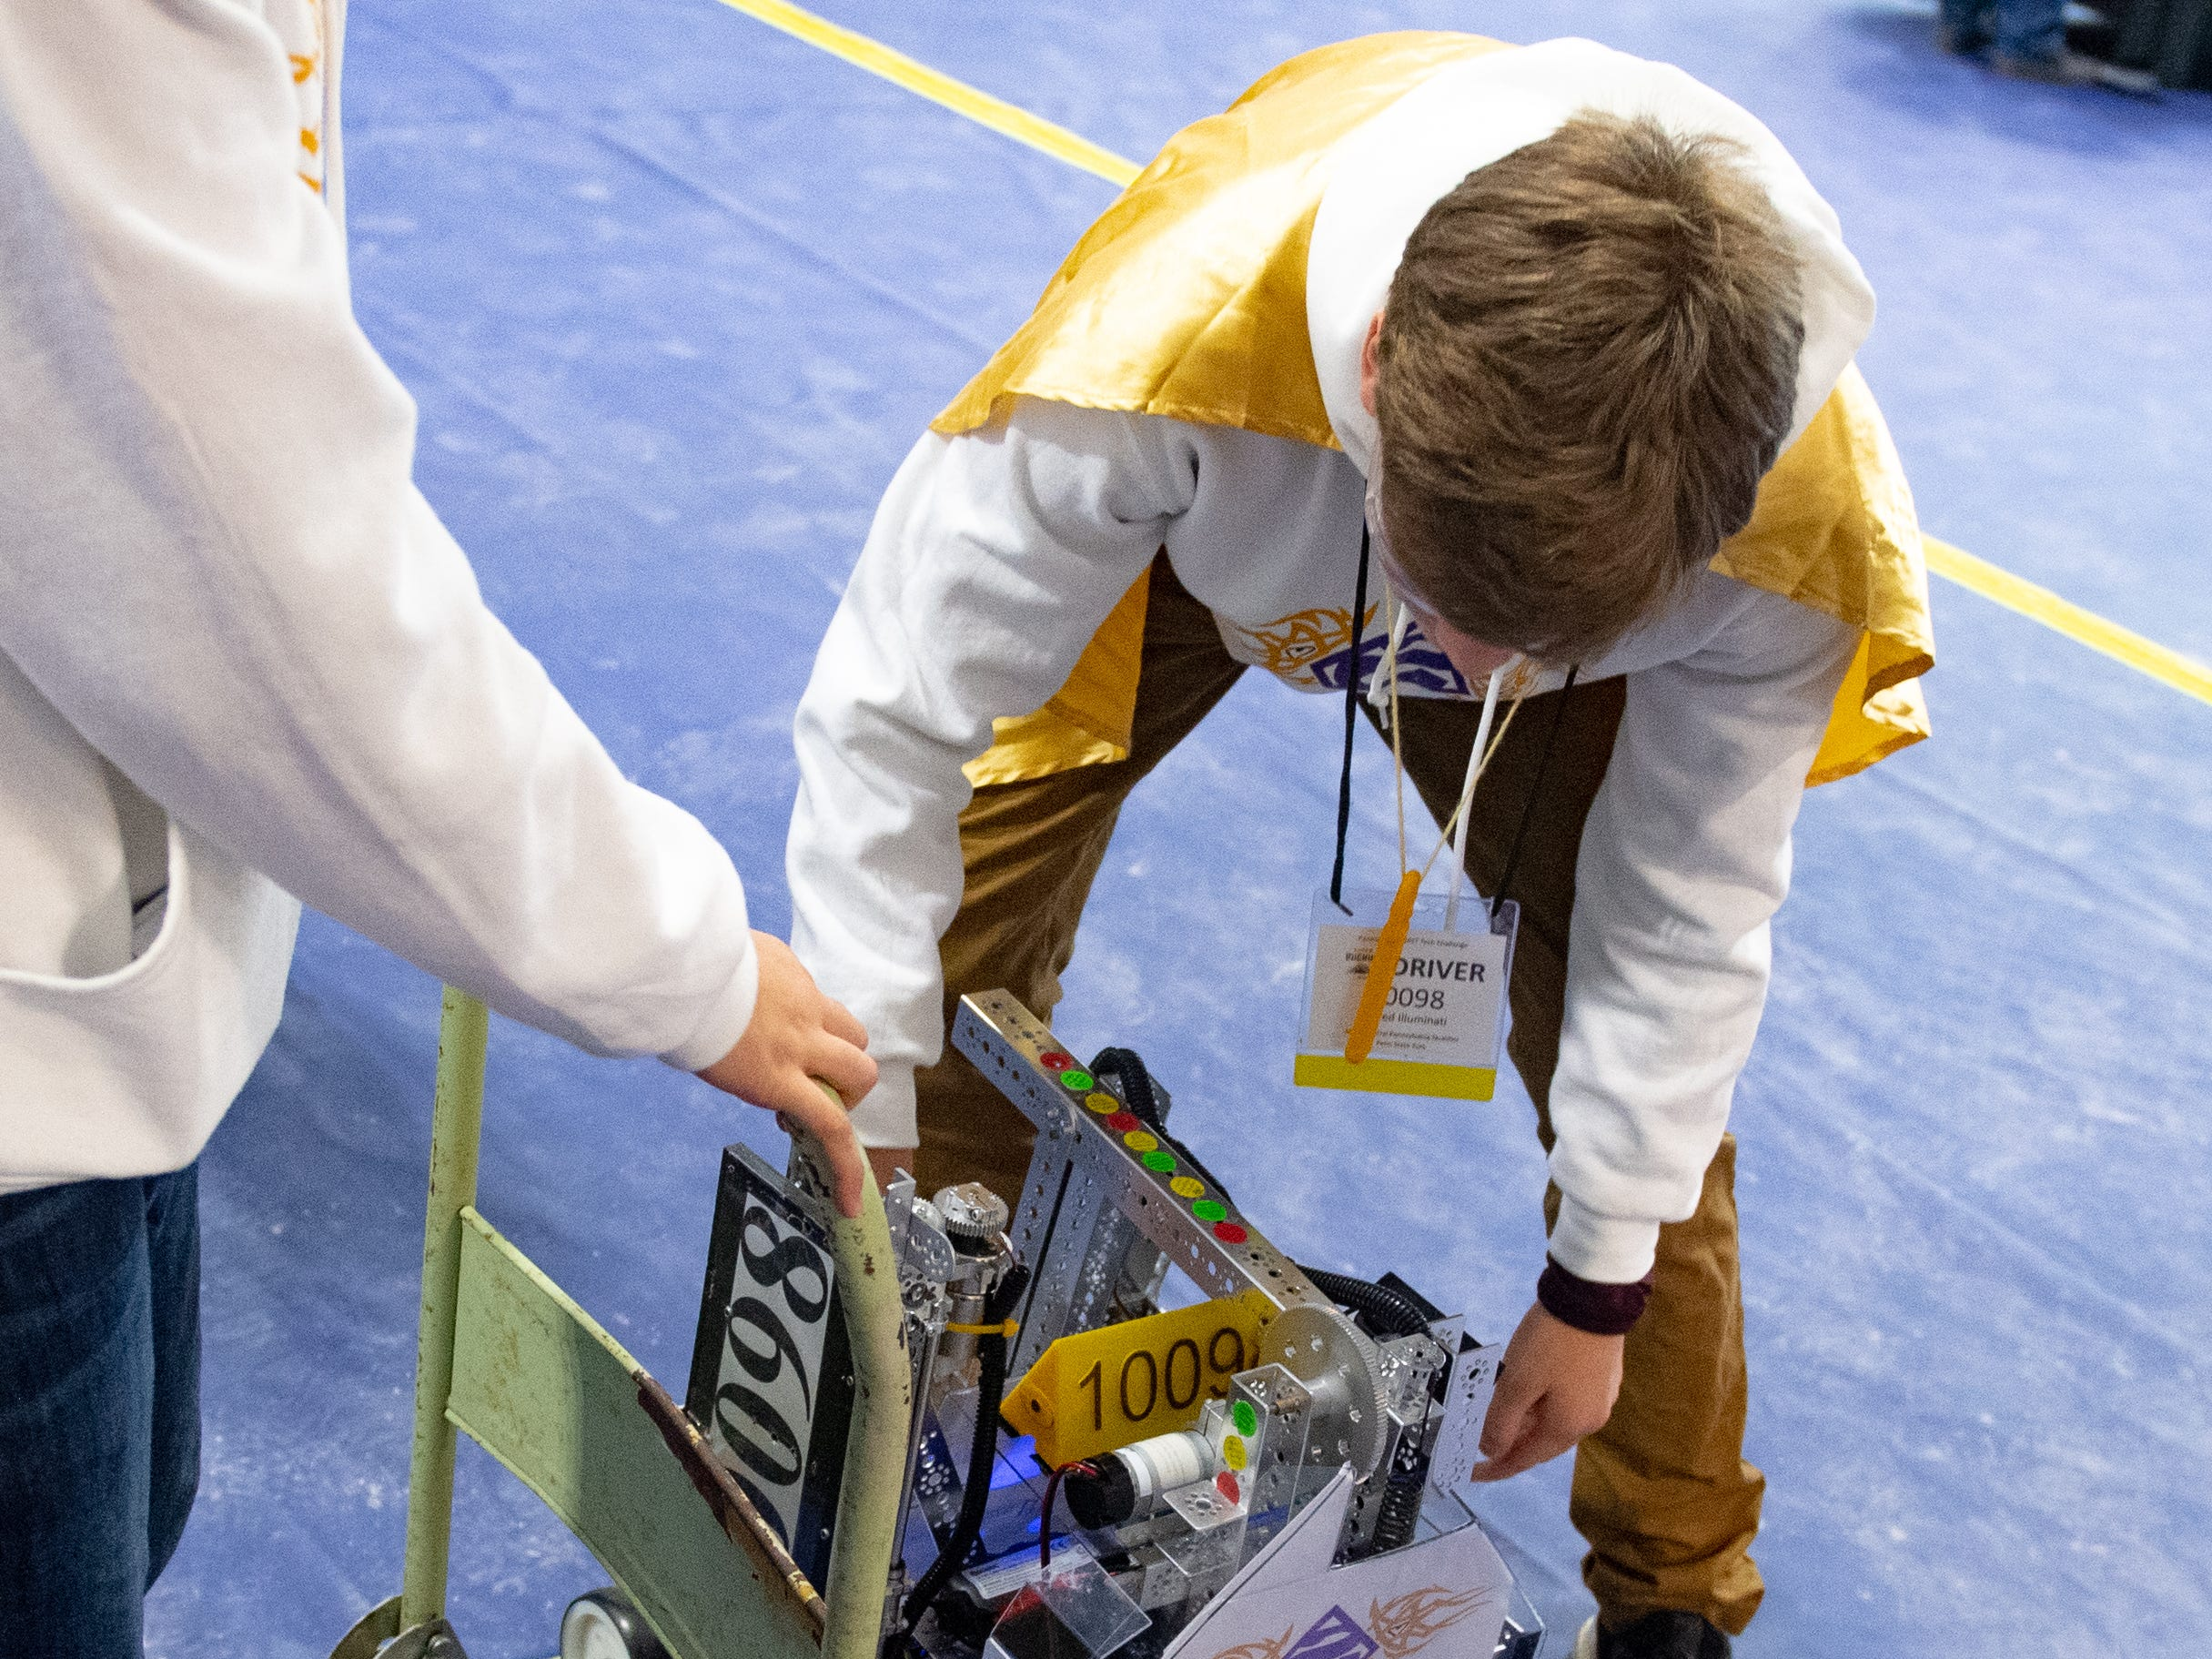 Teams roll their robots around to avoid any accidental damage during the First Tech Challenge robotics competition at Penn State York, February 2, 2019.